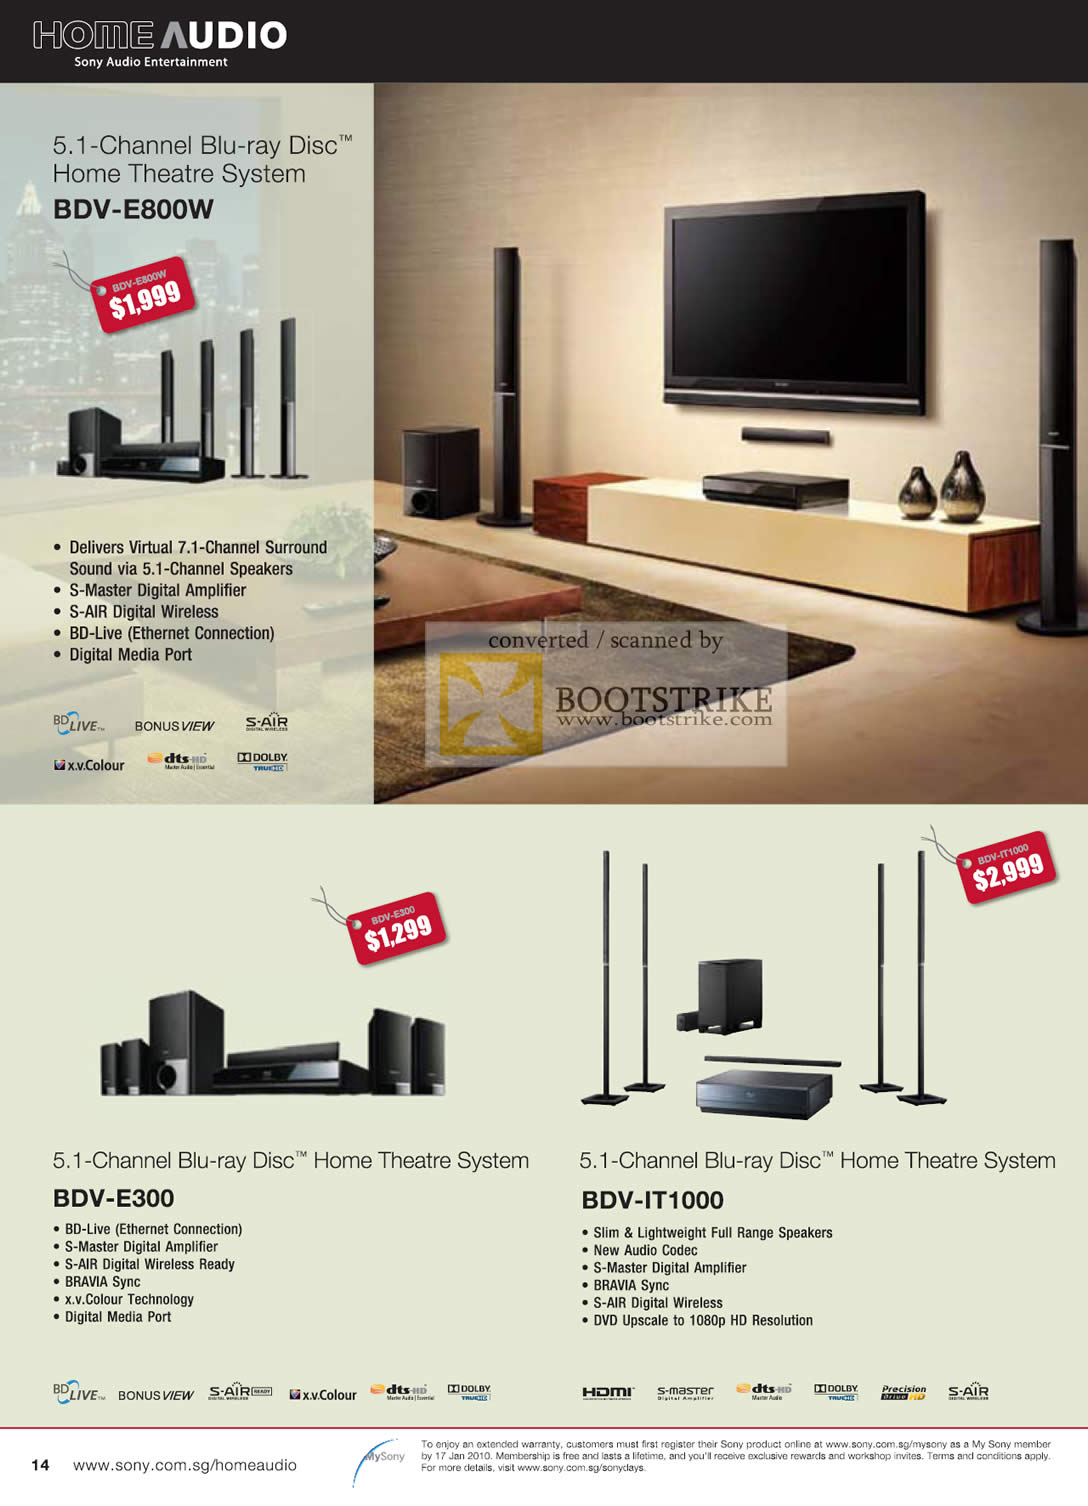 sony home theater system price list. c3 2009 price list image brochure of sony home audio blu ray disc theatre system. « theater system h